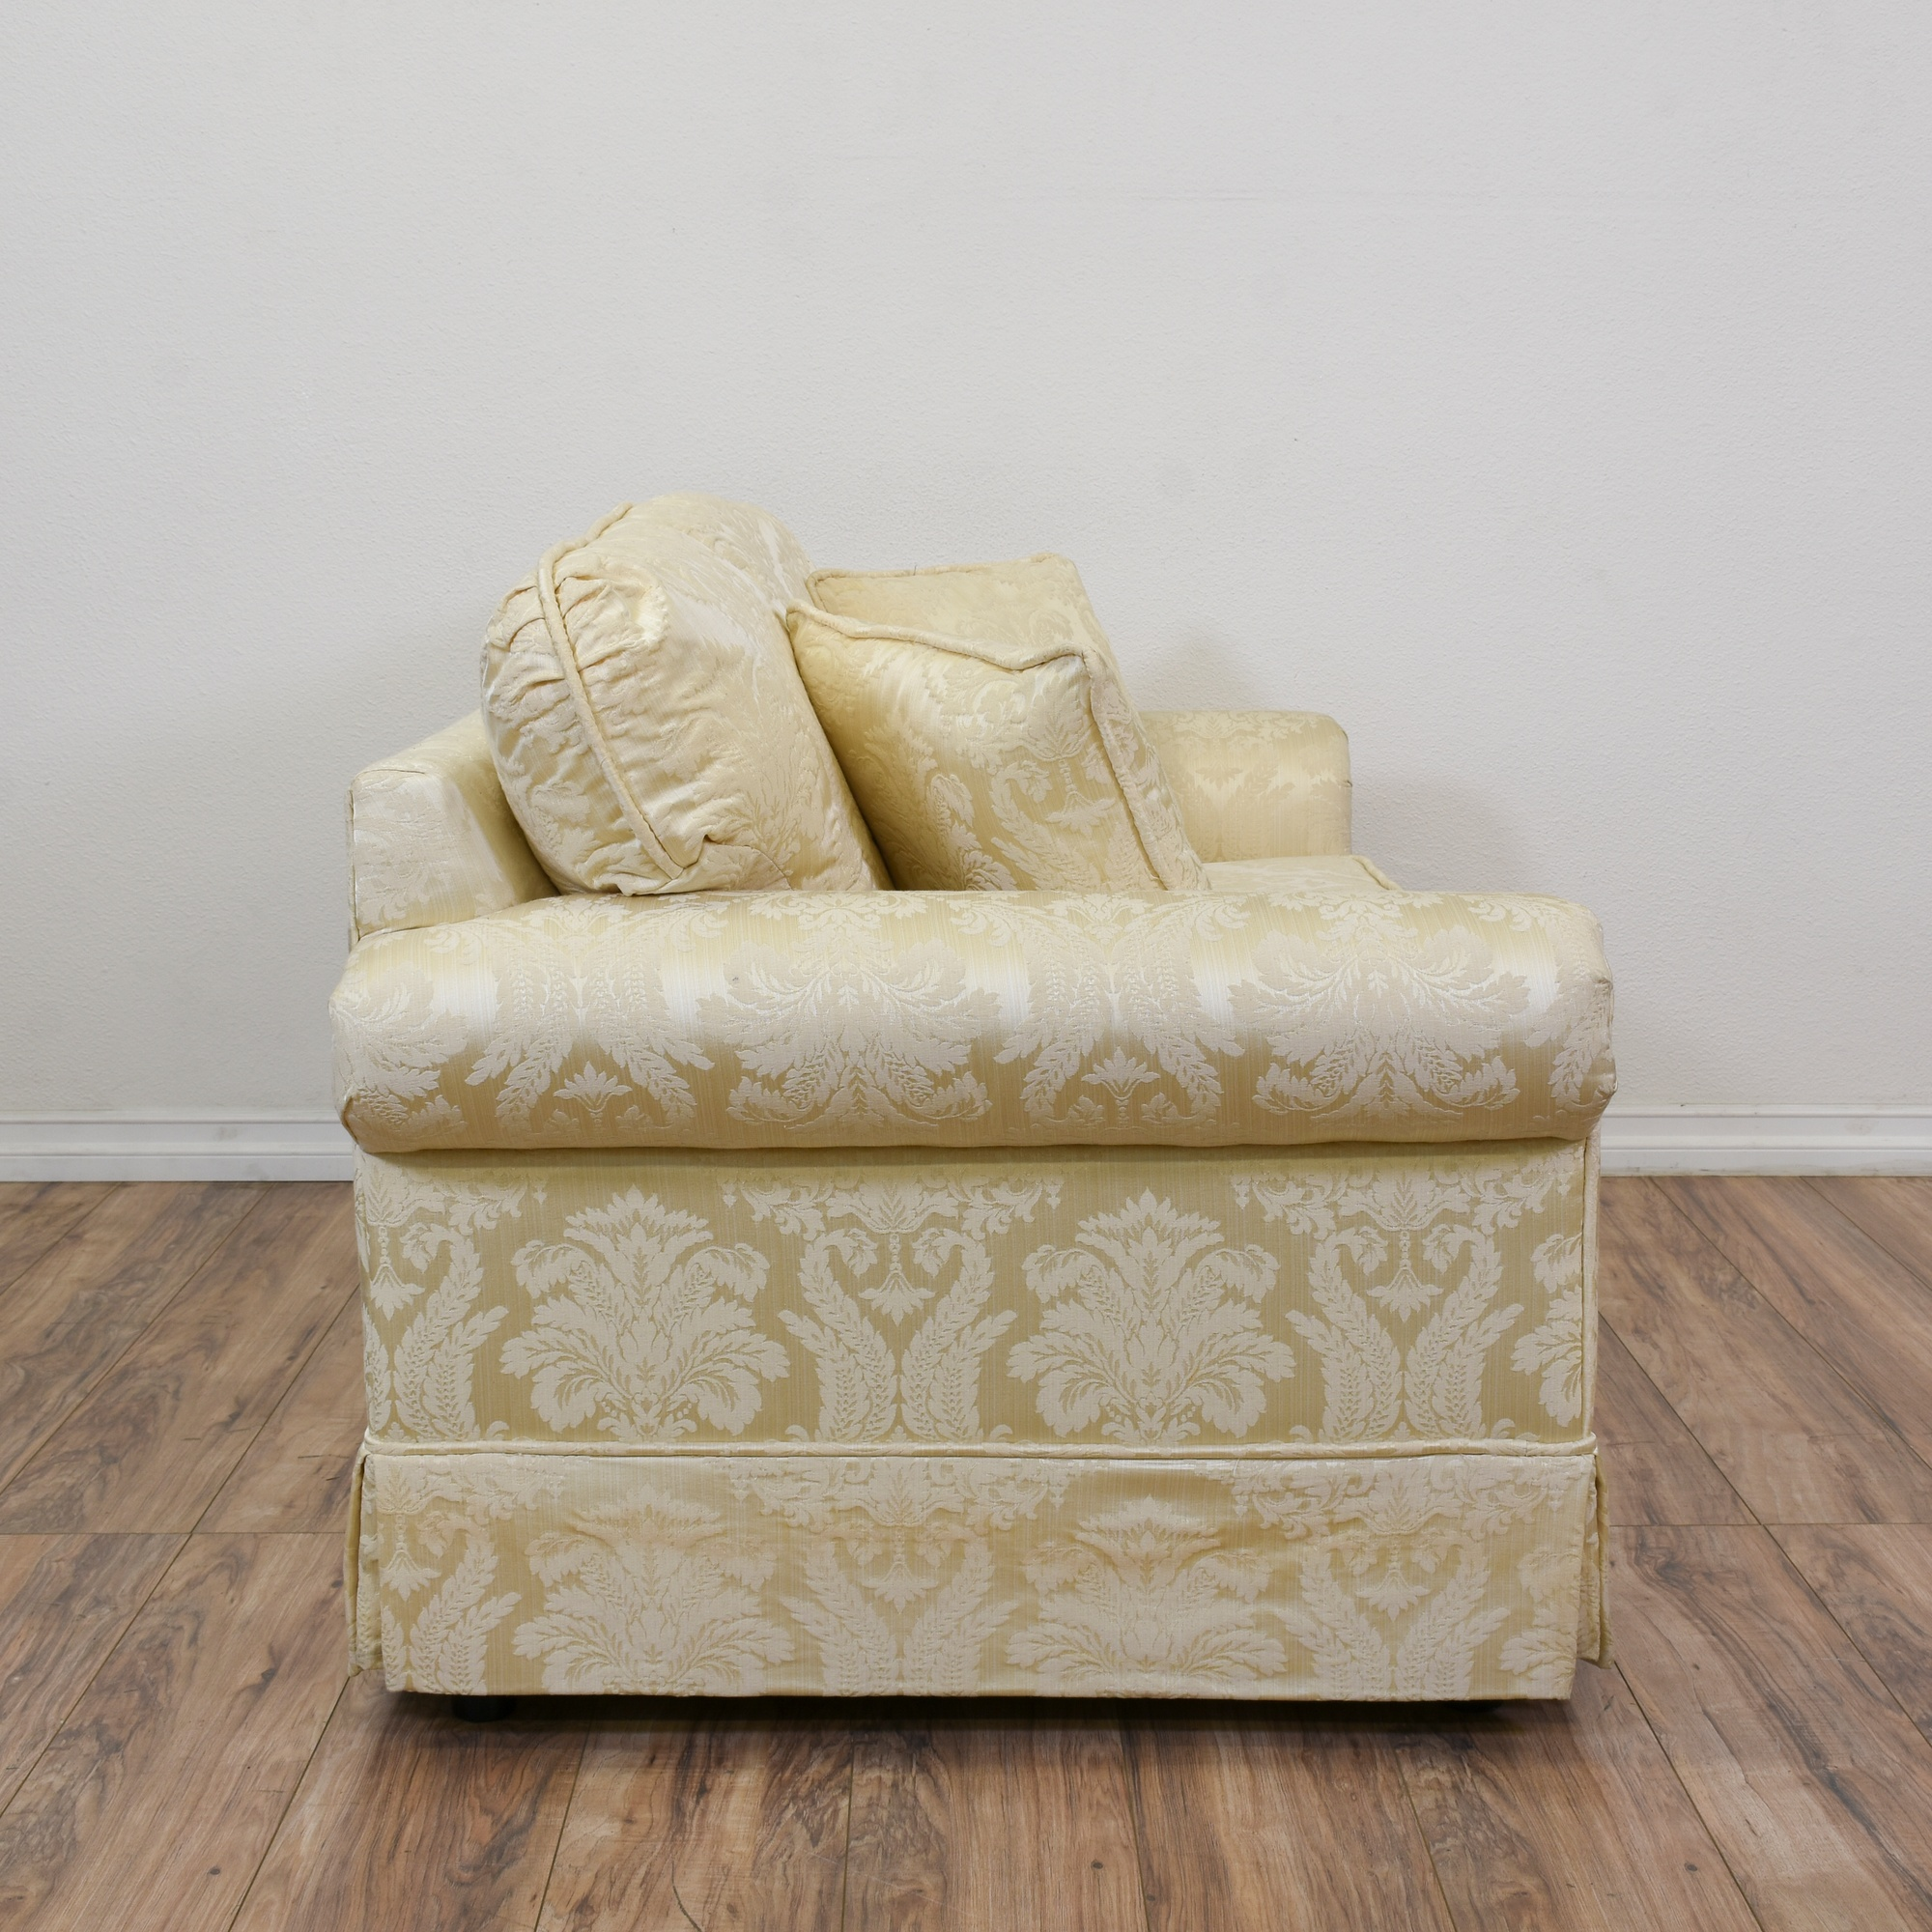 Quot Krause S Quot Cream Floral Damask Loveseat Sofa Loveseat